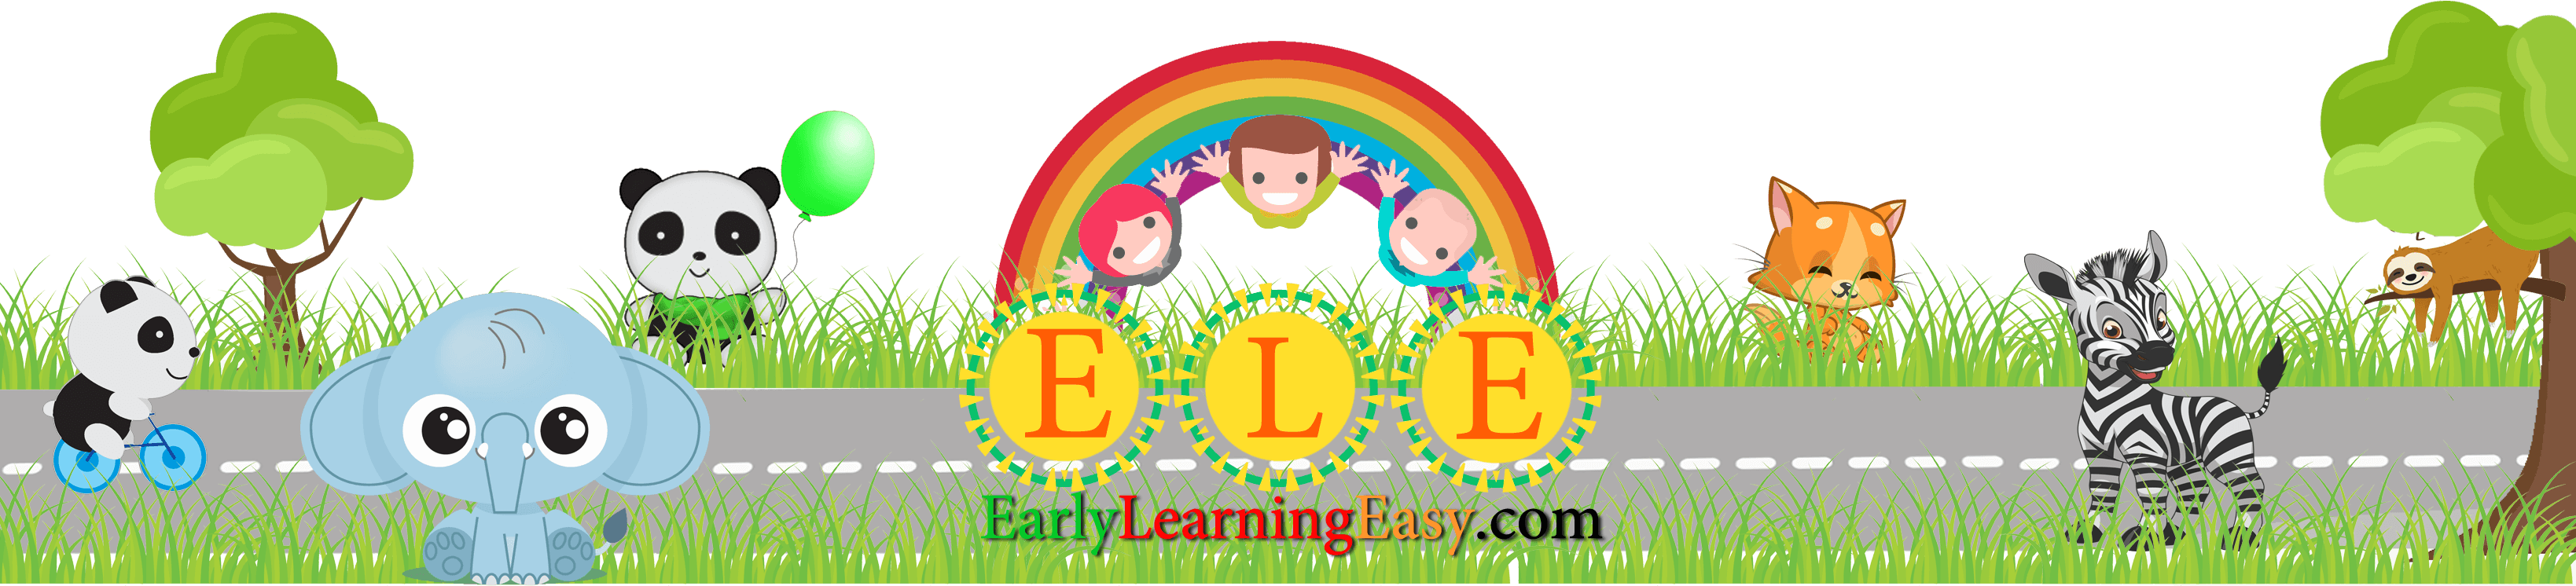 Early Learning Easy